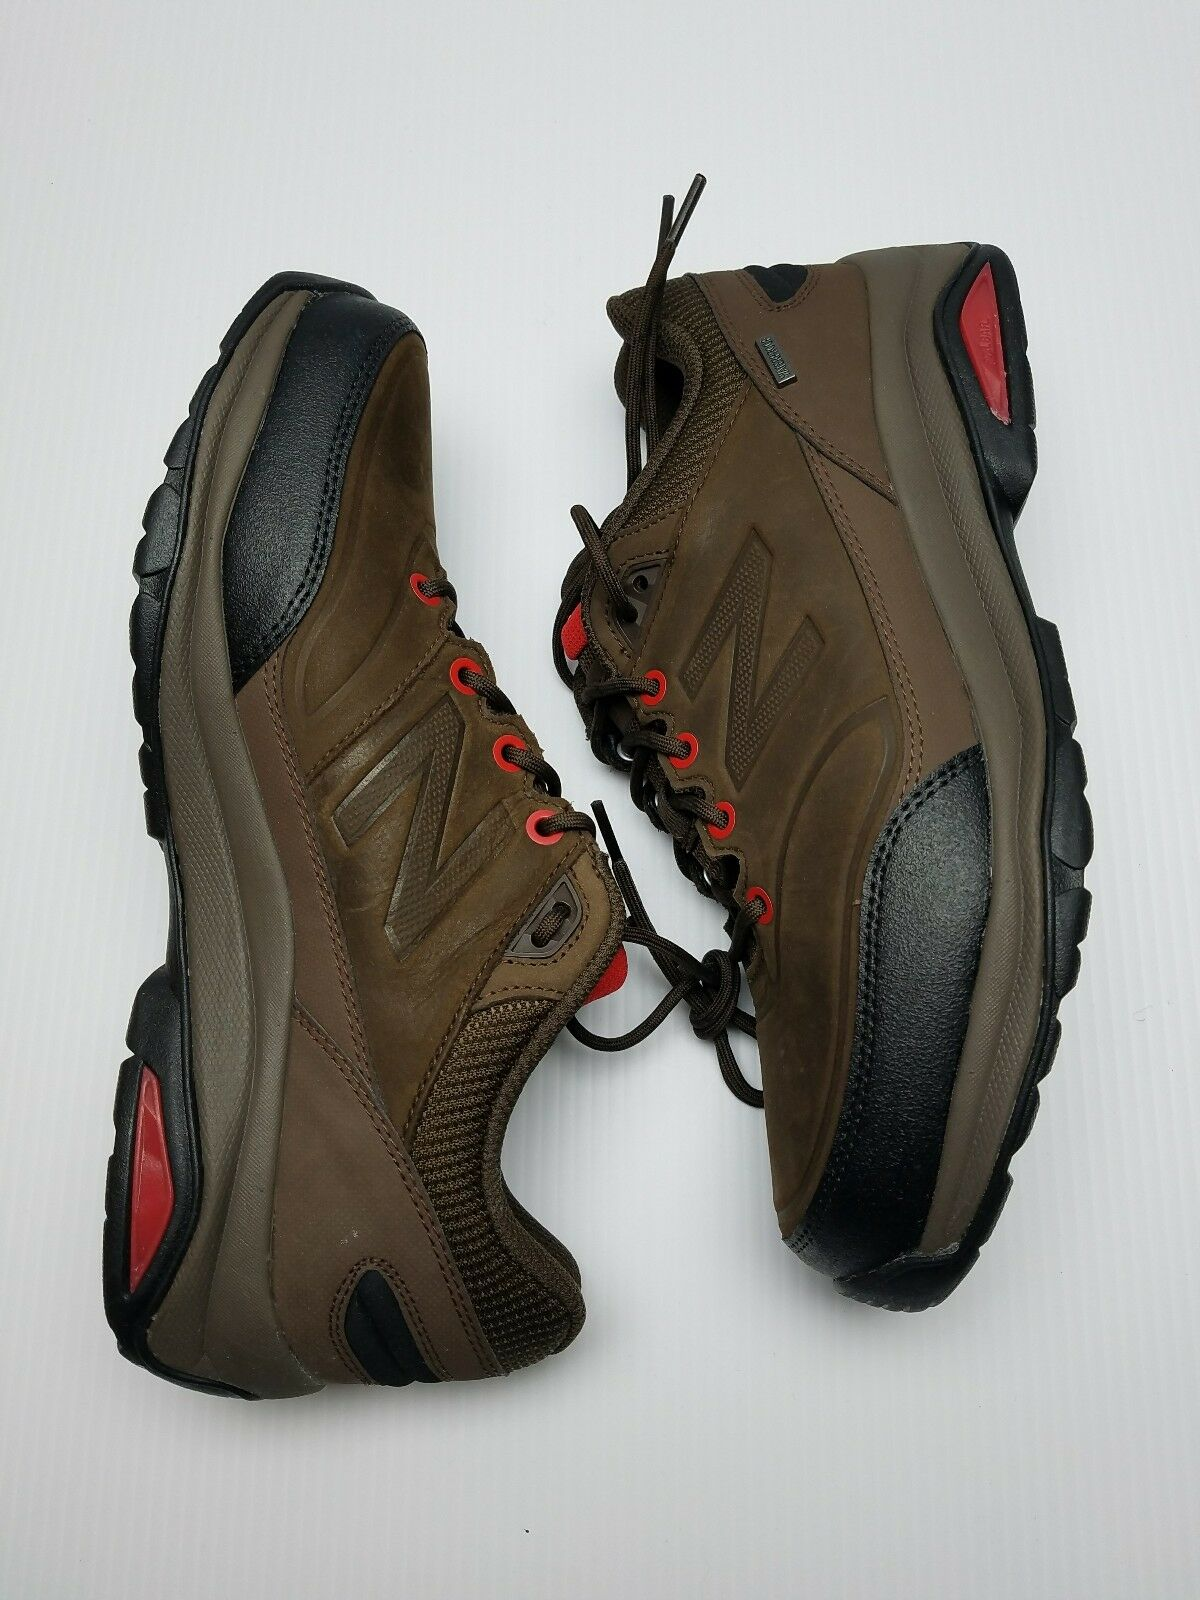 New Balance 1300 Men's Hiking Walking shoes  Brown   Red MW1300BR sz9.5